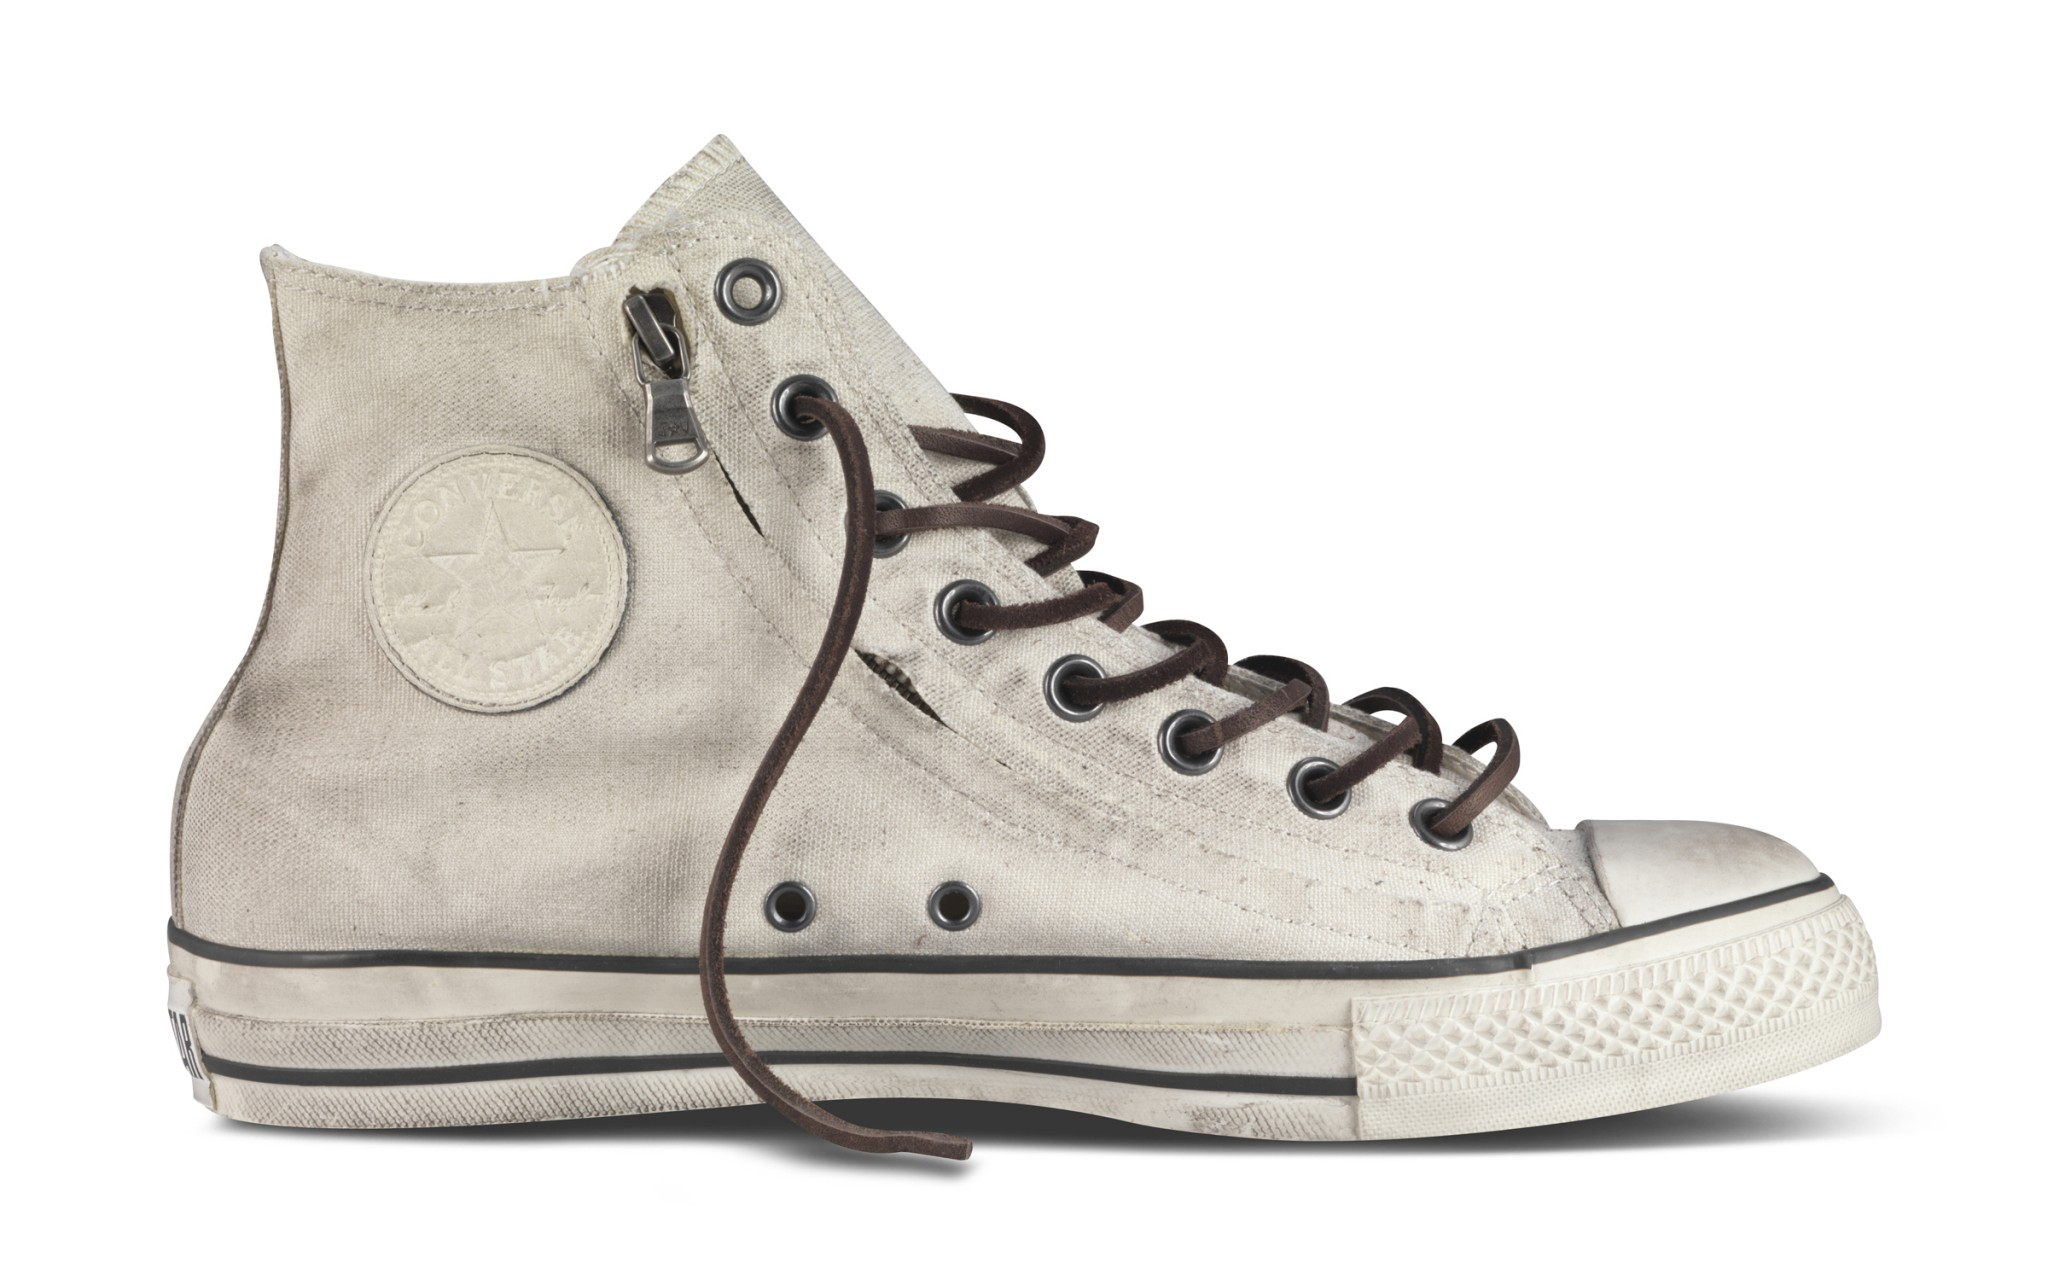 Chuck Taylor All Star Double ZIP_G06052-CT039U-13S01